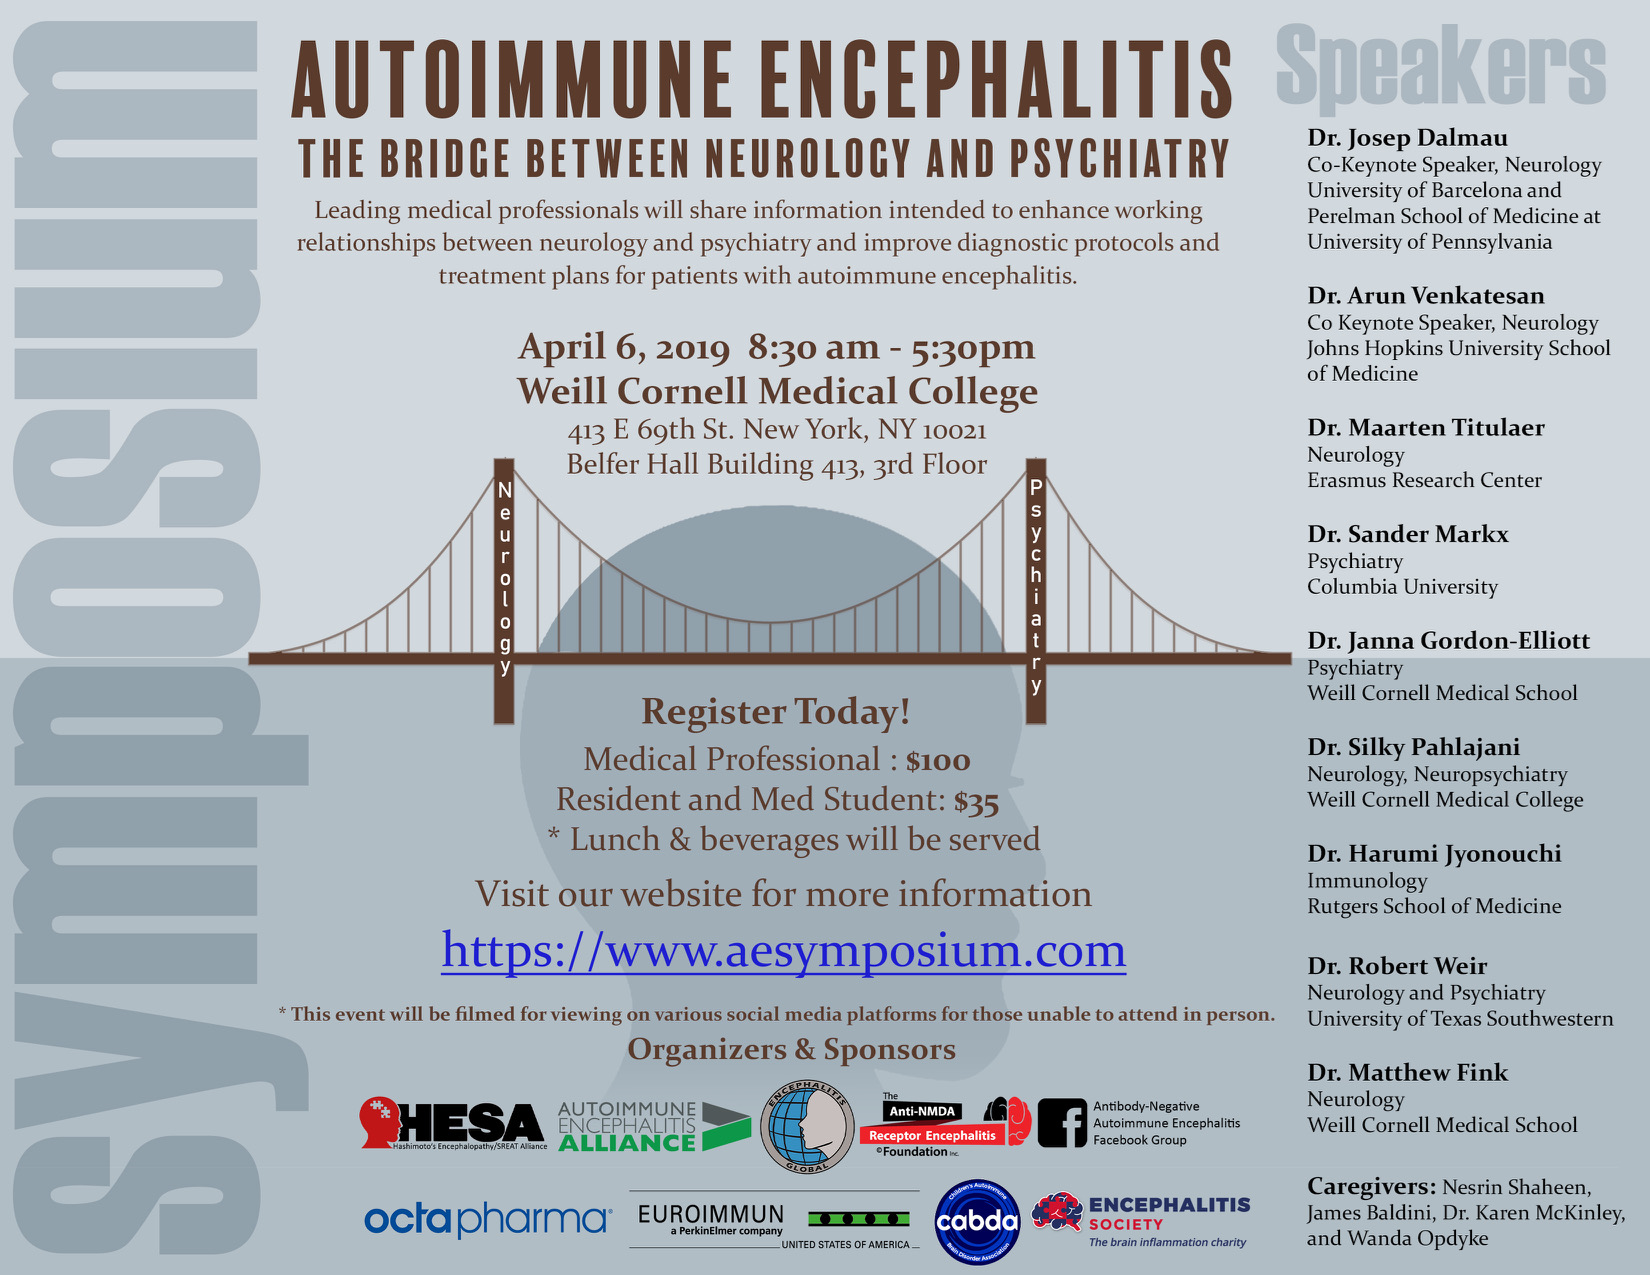 ae symposium poster.png